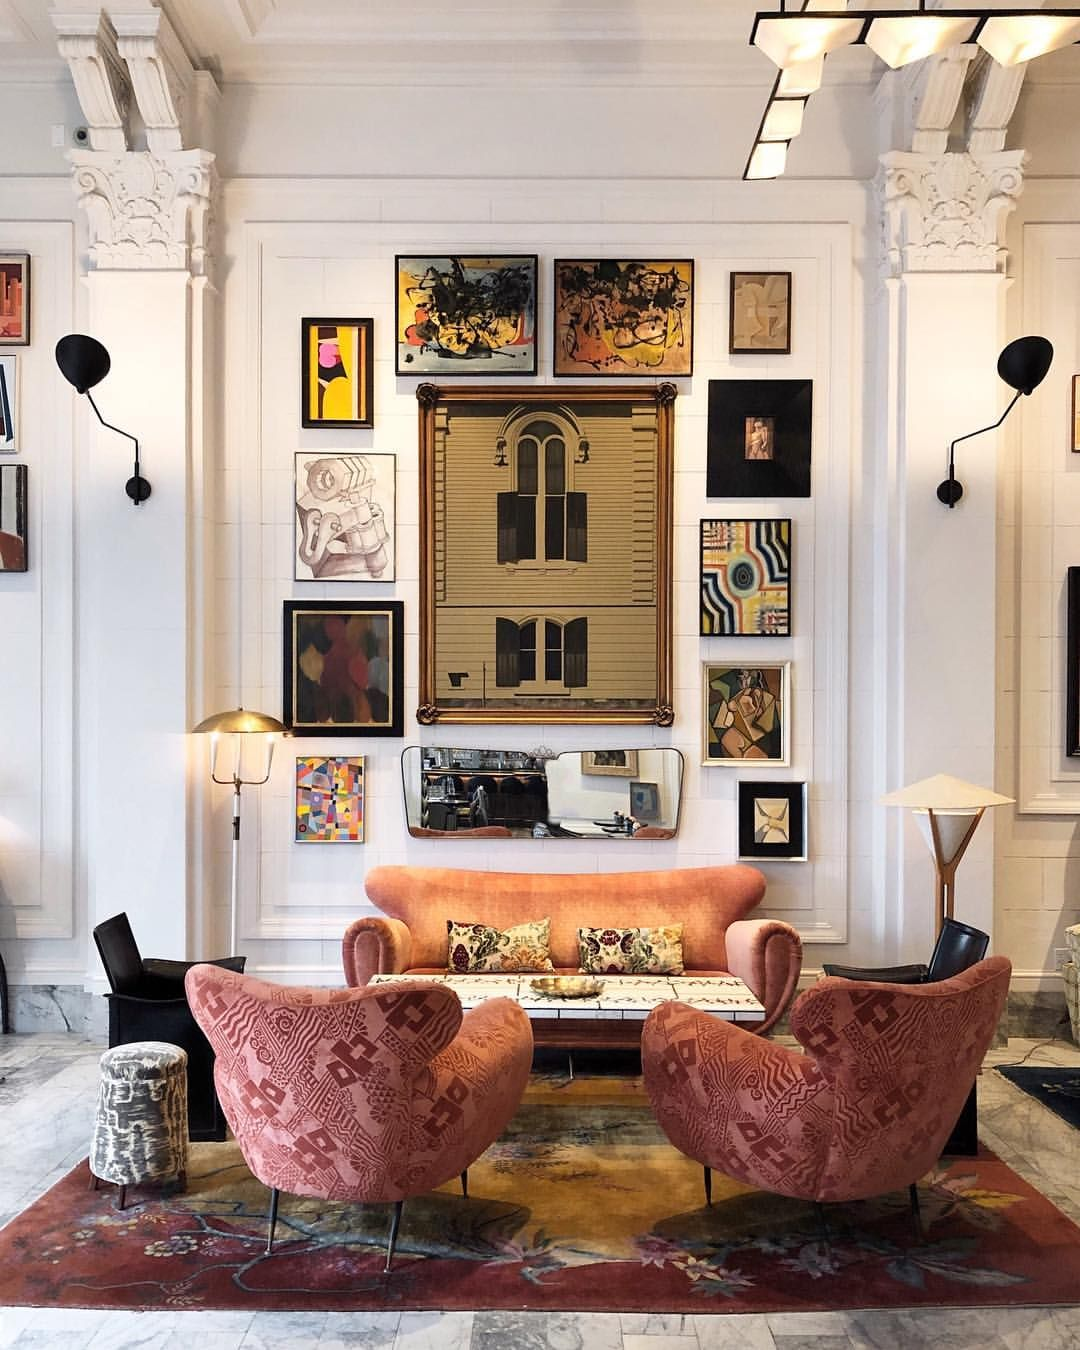 Home Decor 2012 Luxury Homes Interior Decoration Living: Inside A 1920s Storybook Home's Major Modern Redesign